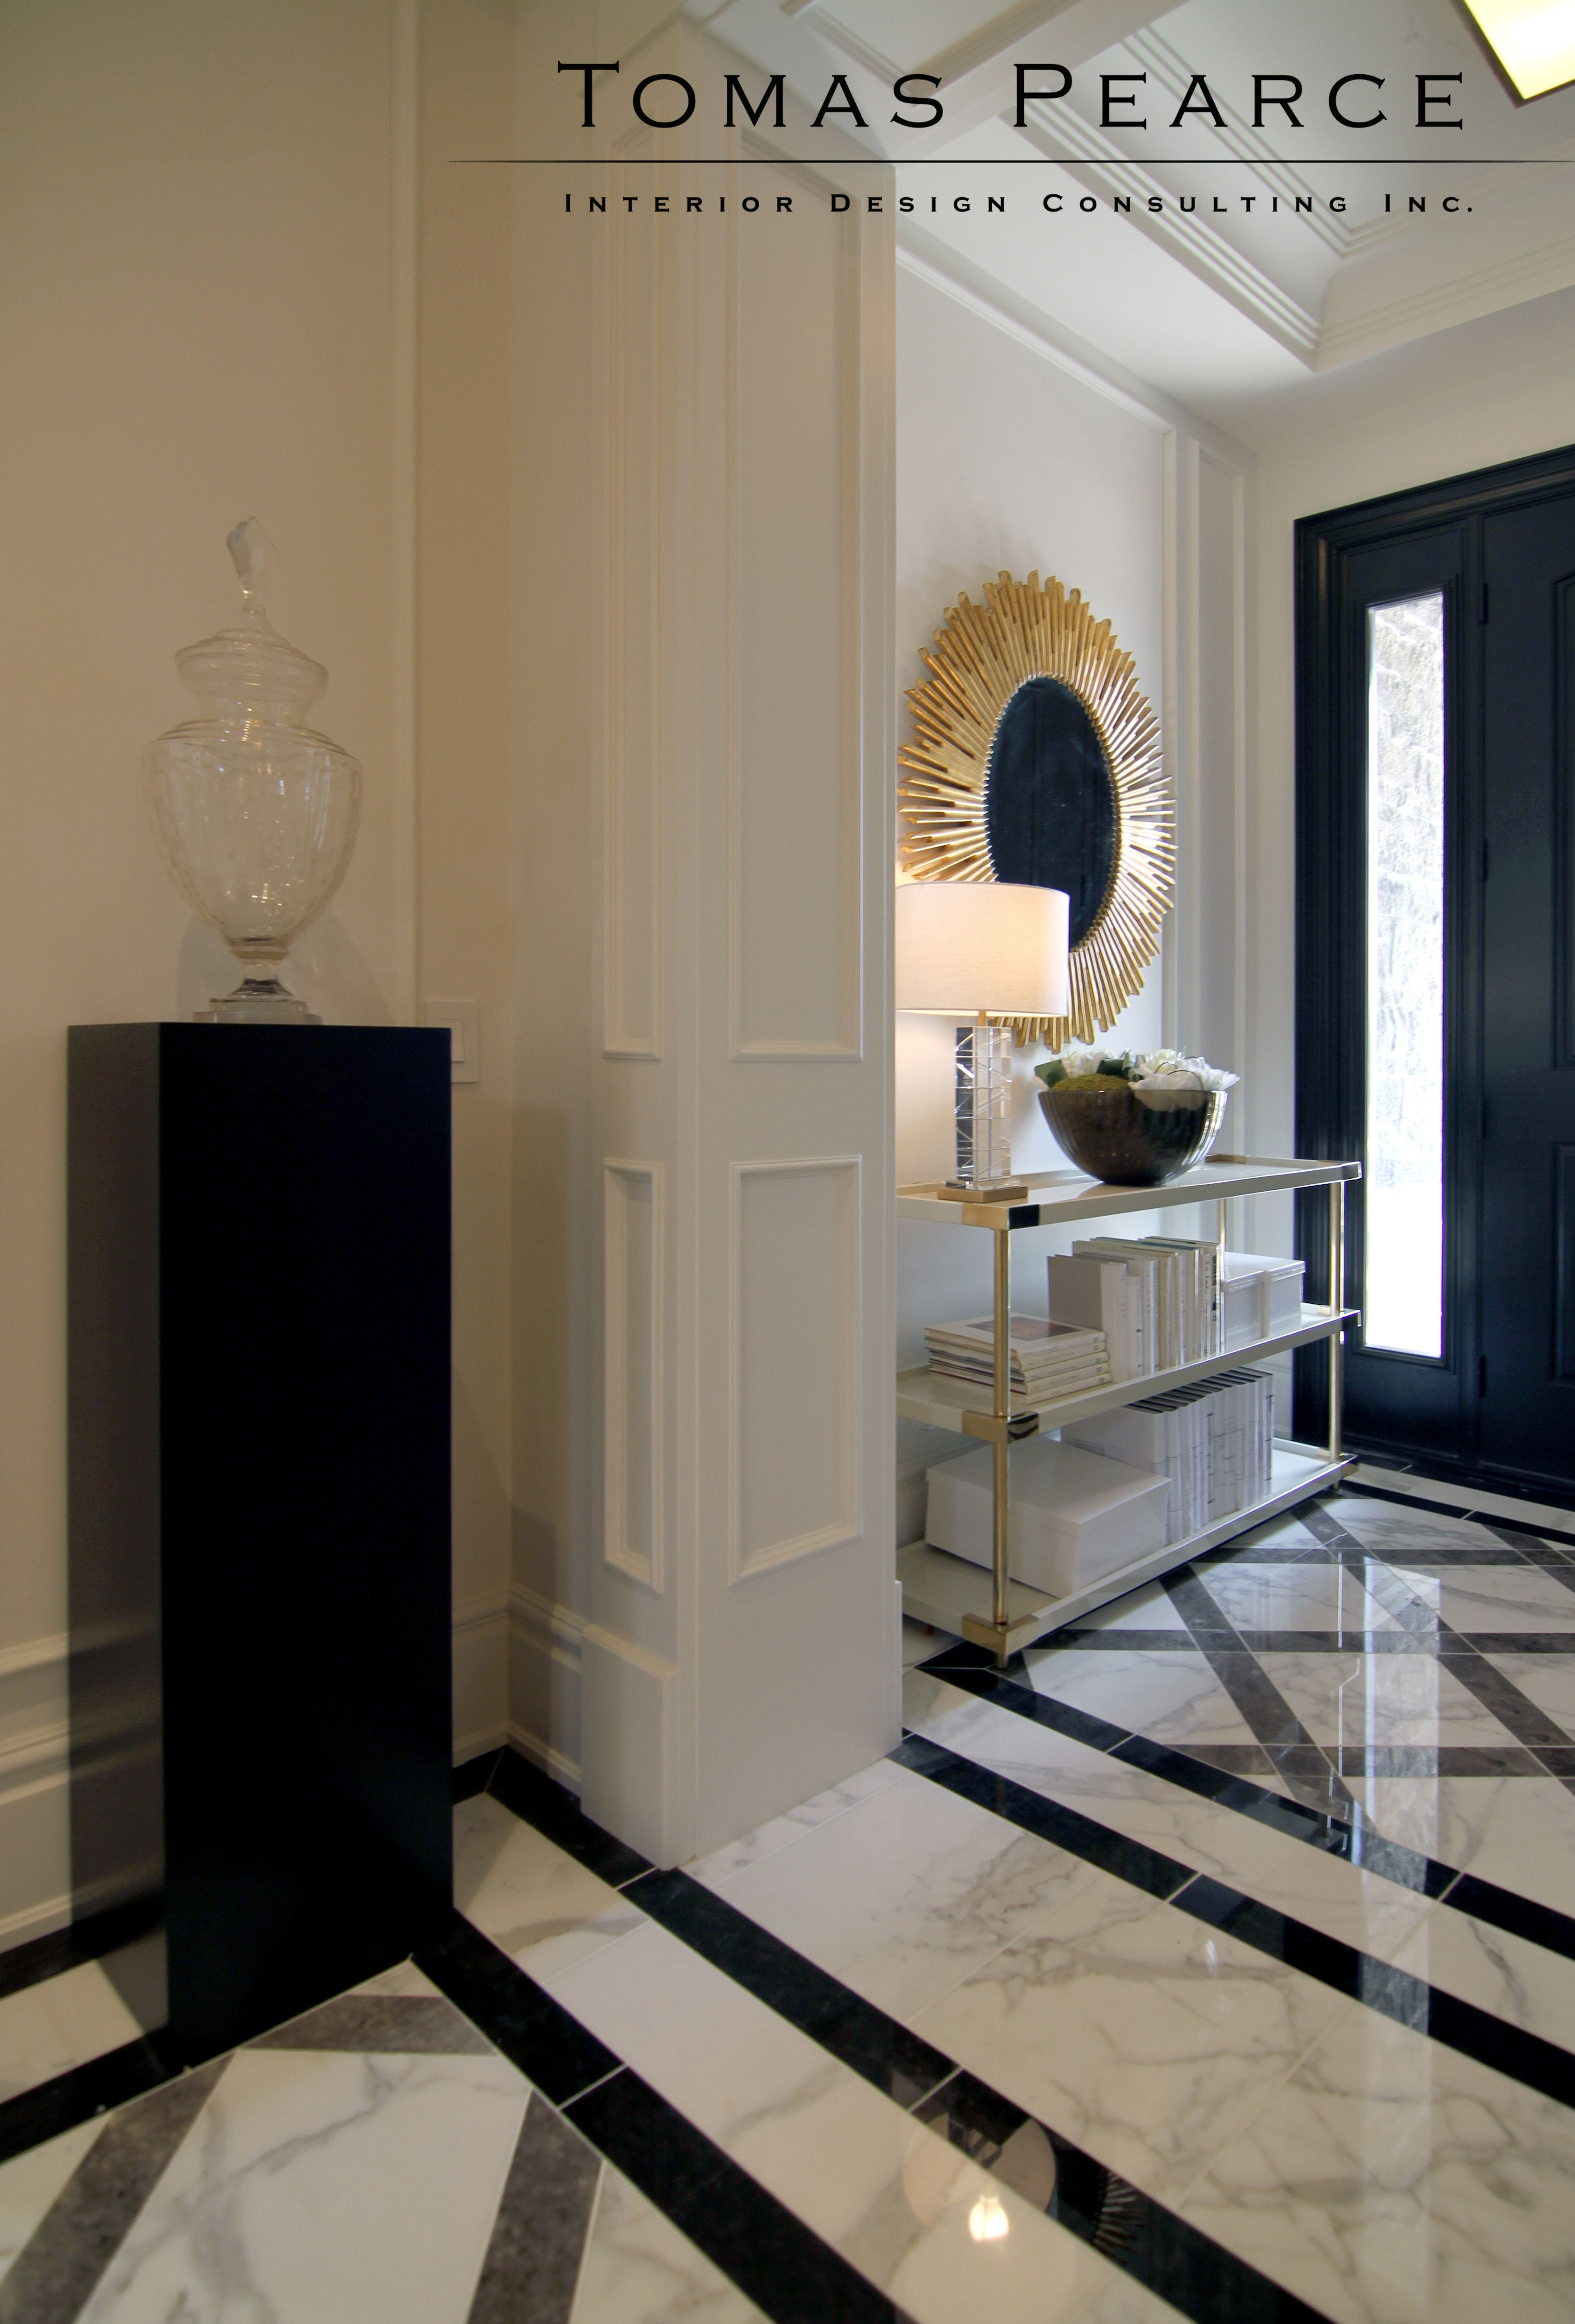 Entry Tomas Pearce Interior Design Consulting Inc Dom